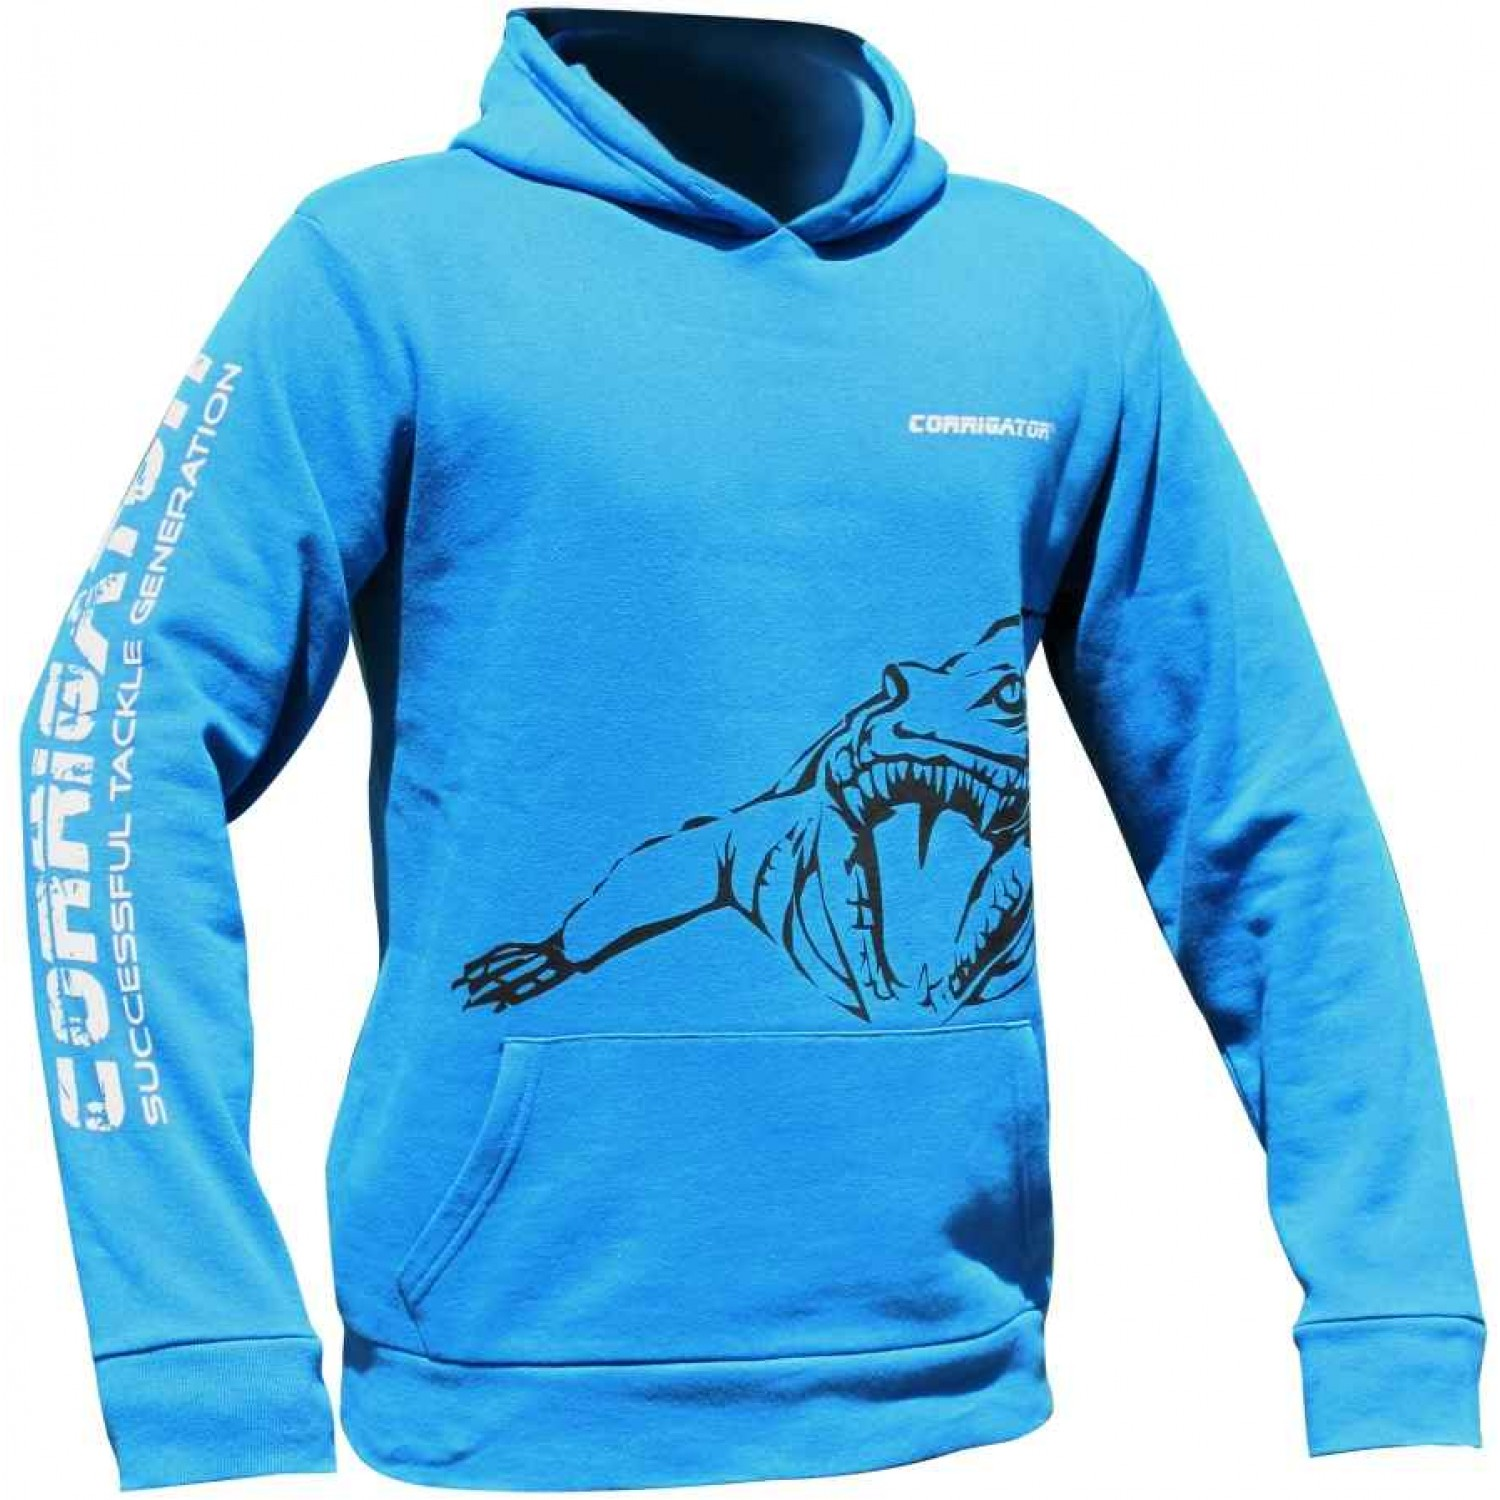 Jenzi Corrigator Sweat-shirt blau